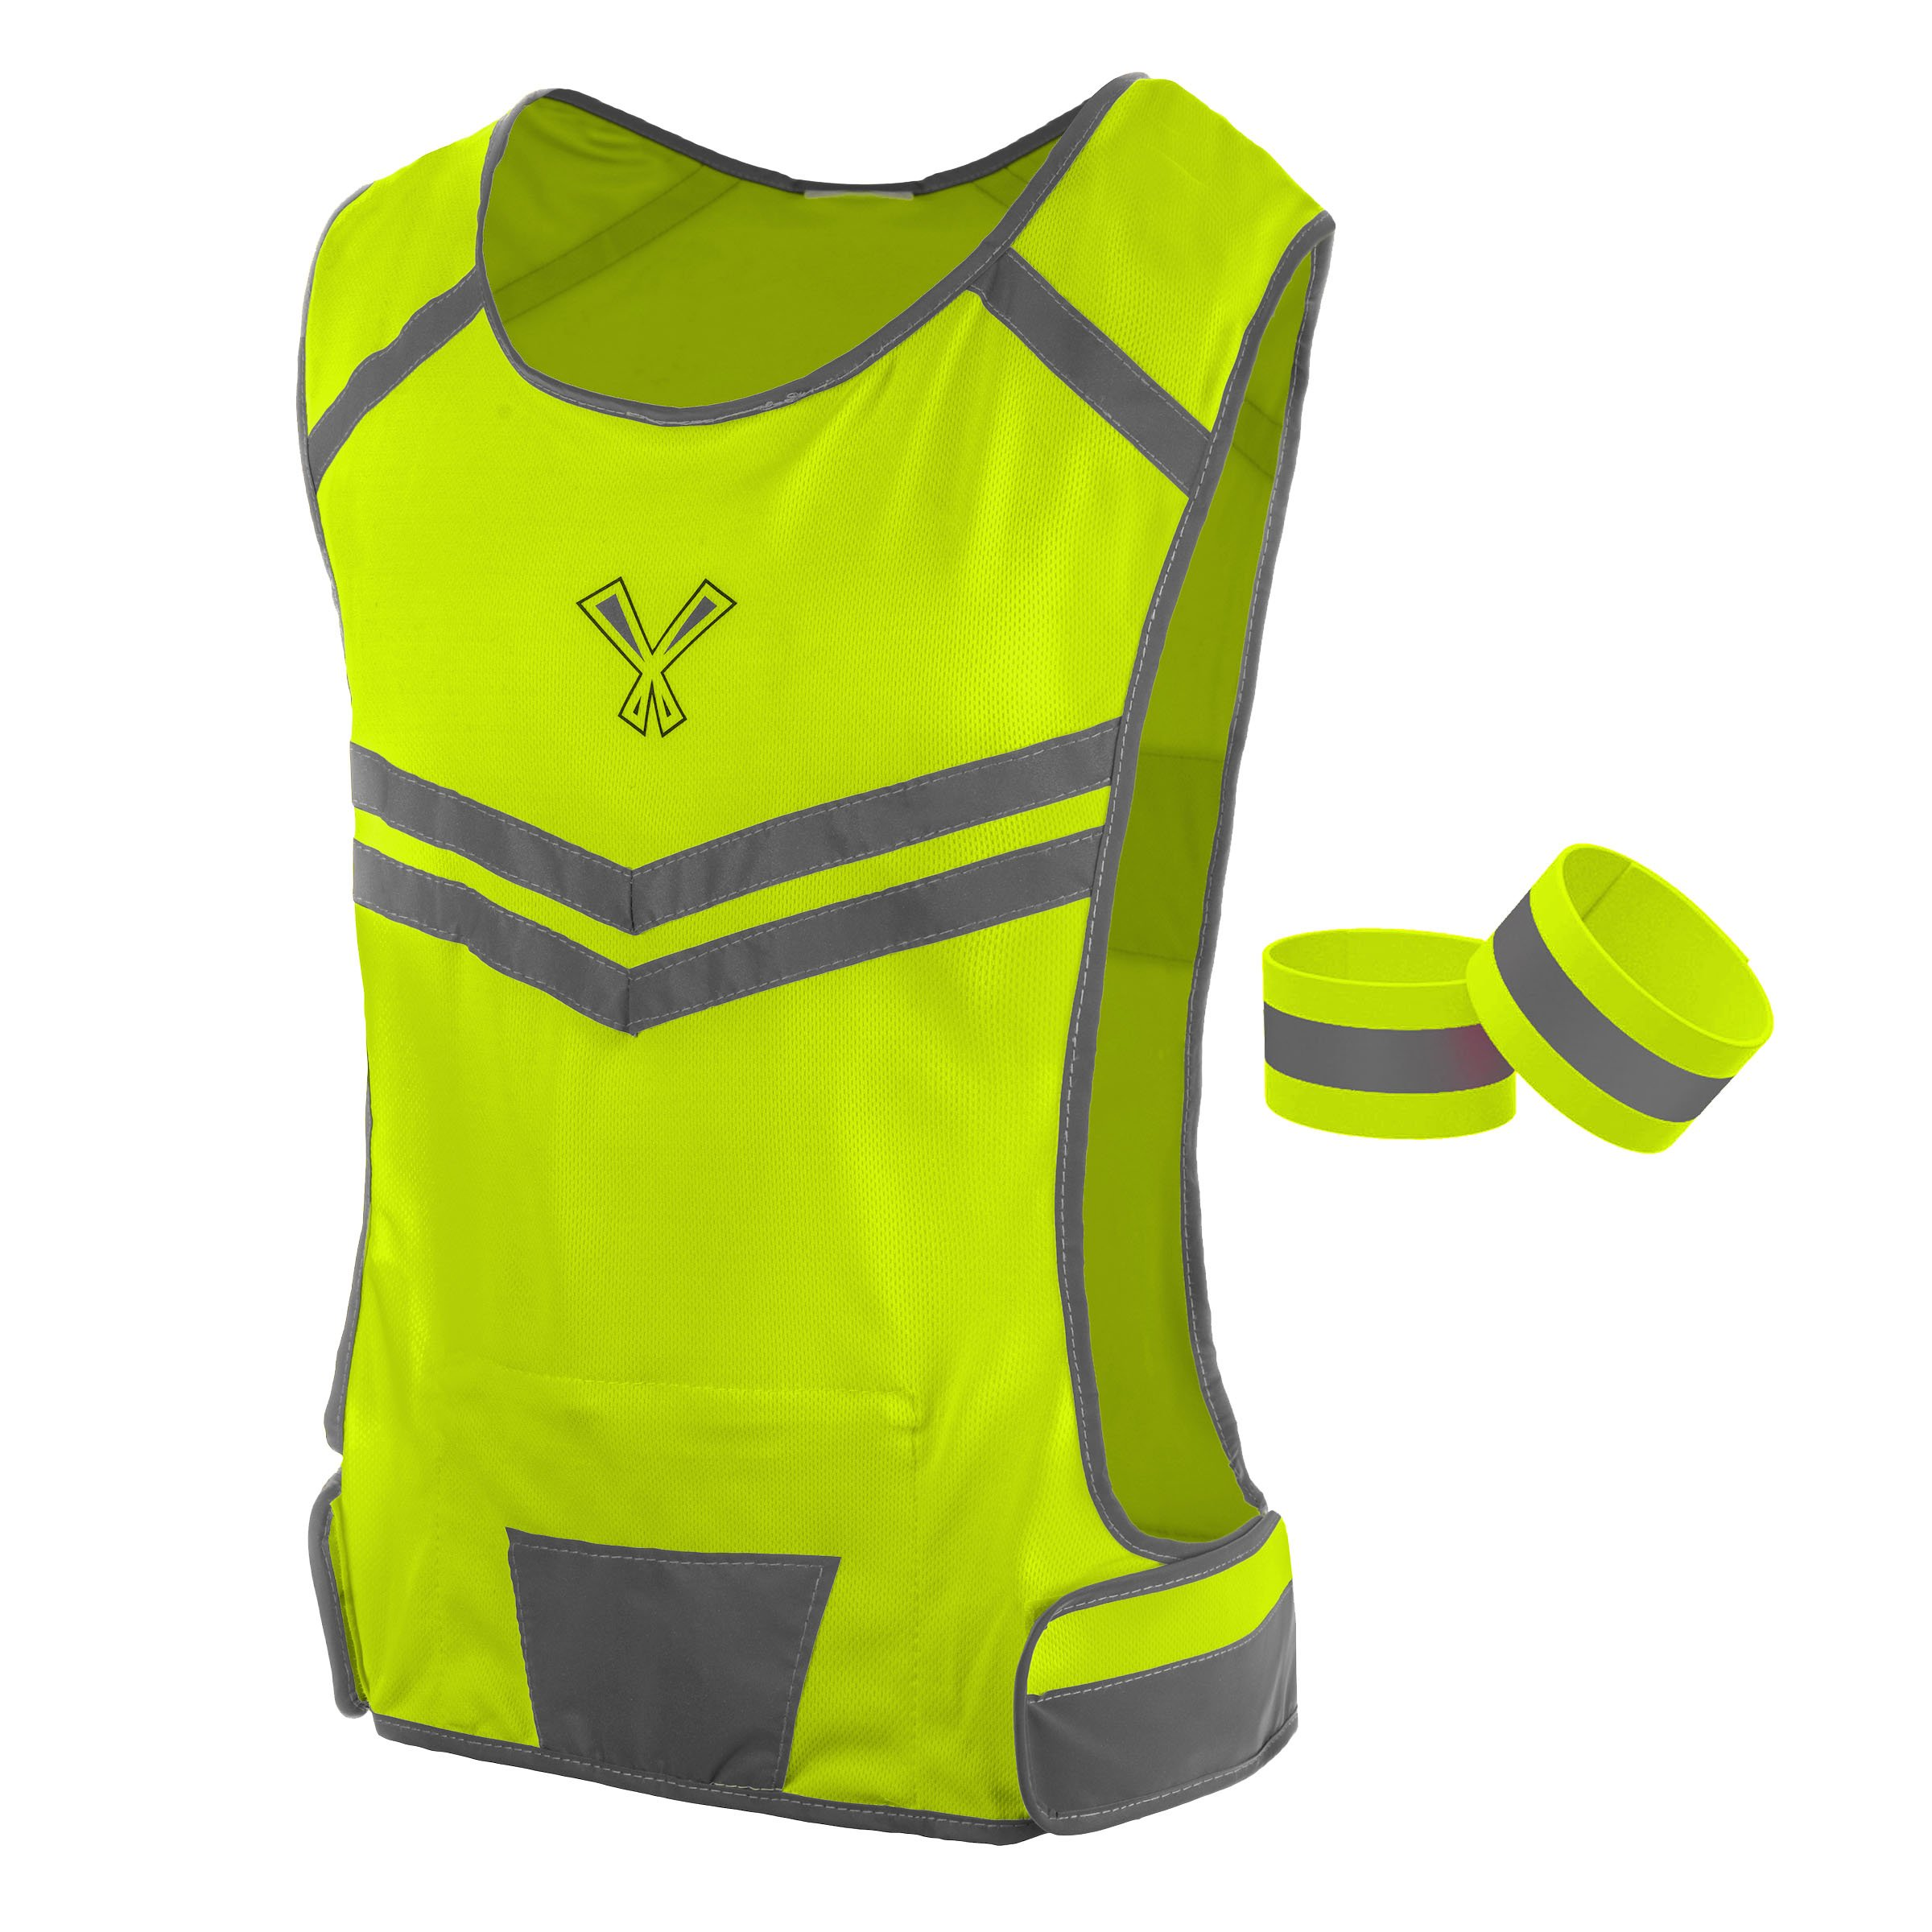 247 Viz The Reflective Vest with Inside Pocket & 2 High Visibility Running Safety Bands (Neon Yellow, Small)